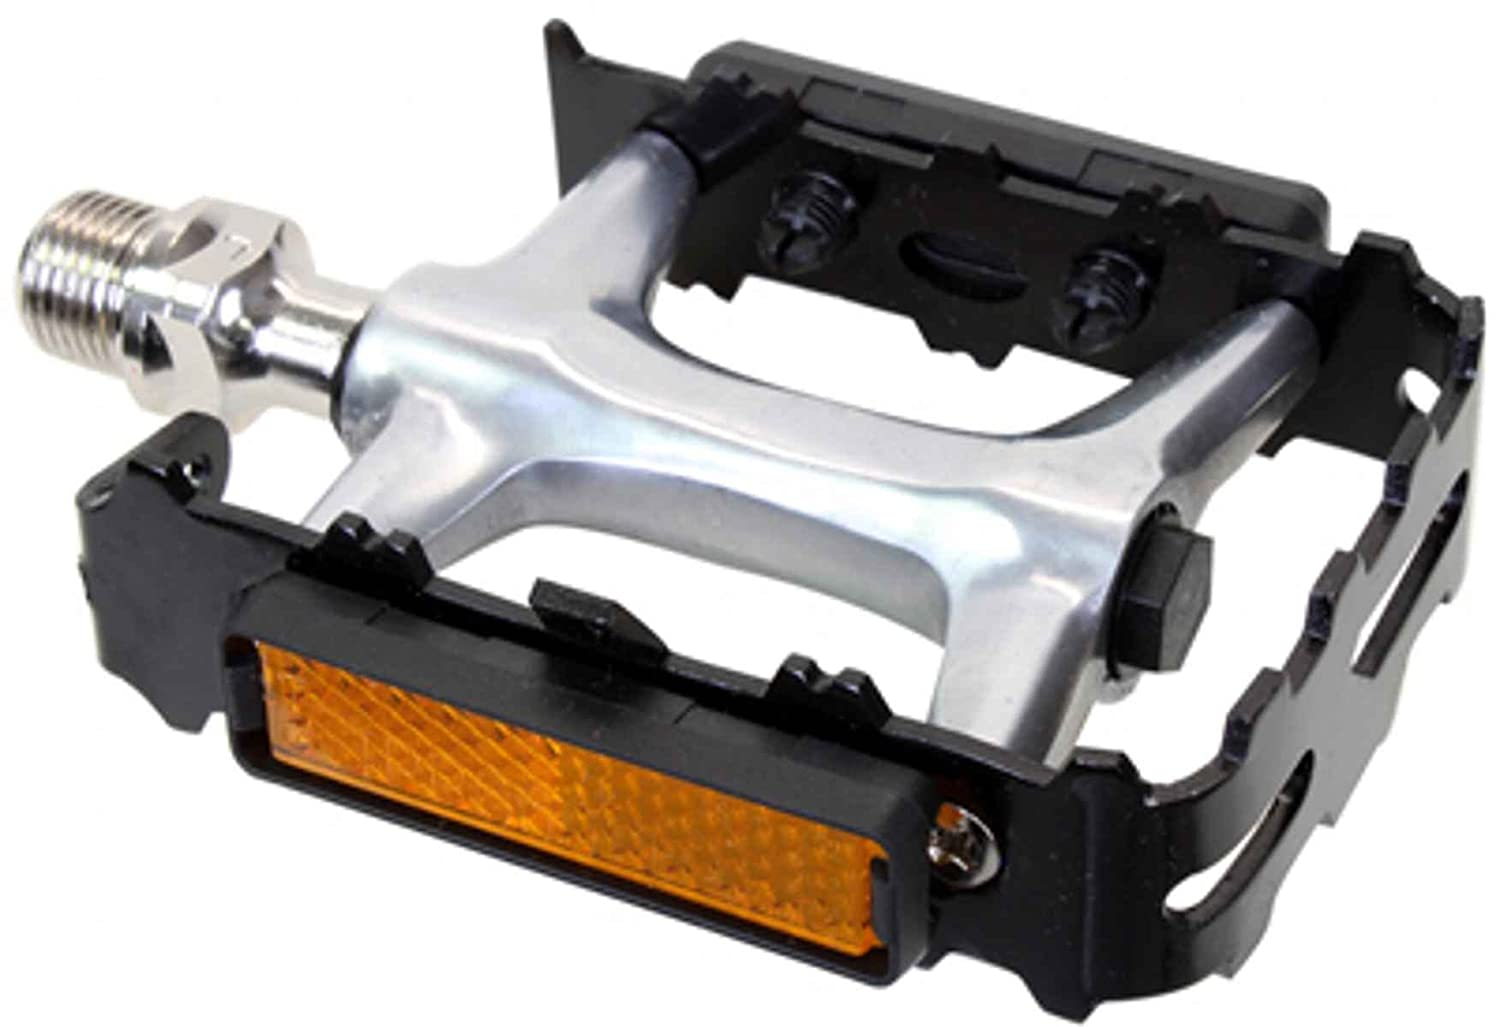 SunLite Mountain Sport Sealed Pedals, 9/16